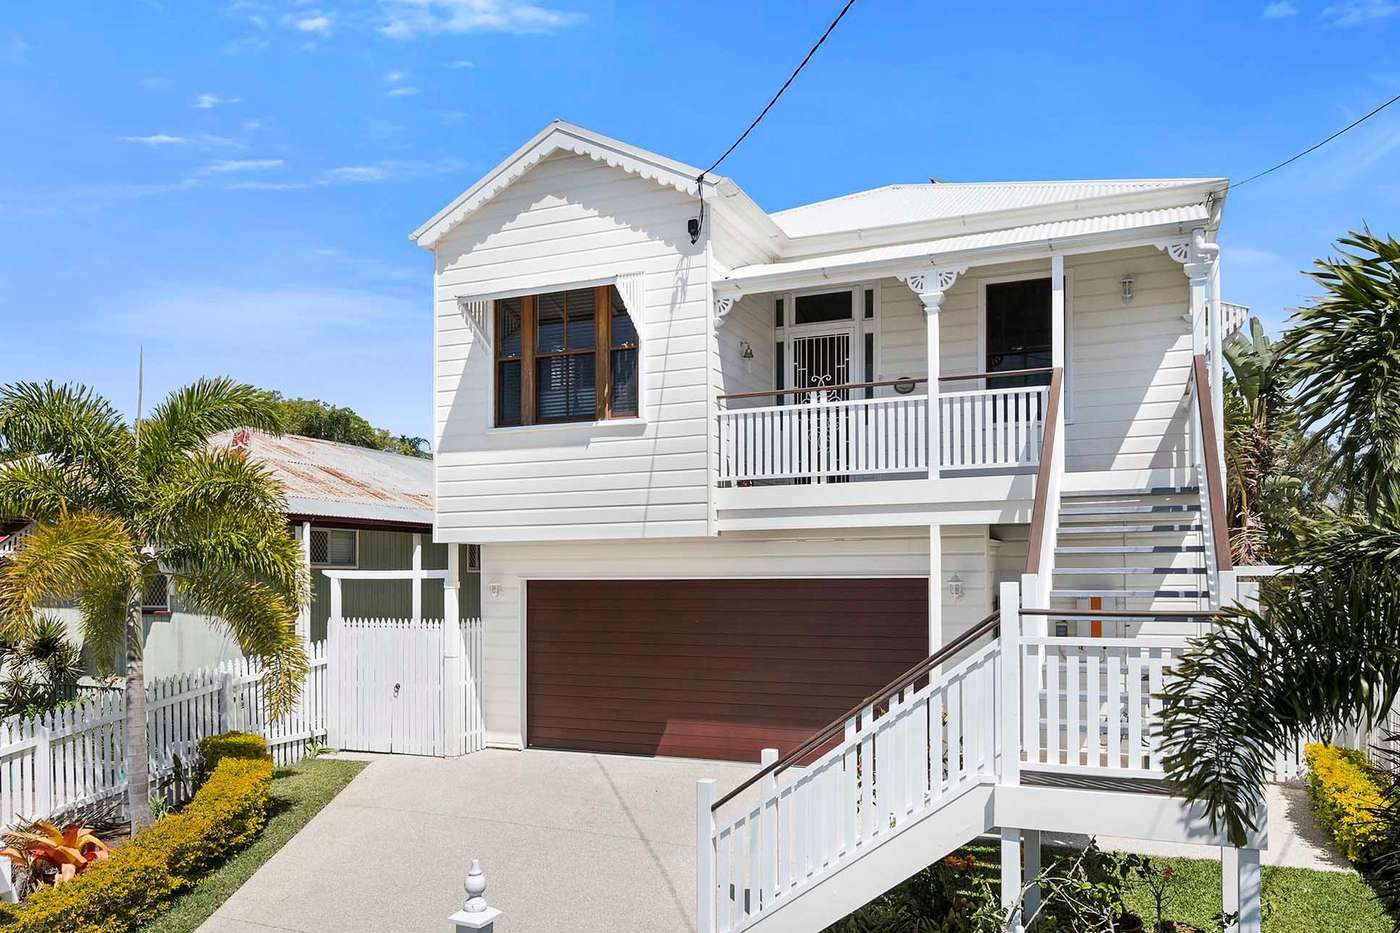 Main view of Homely house listing, 40 Coreen Street, Wynnum, QLD 4178